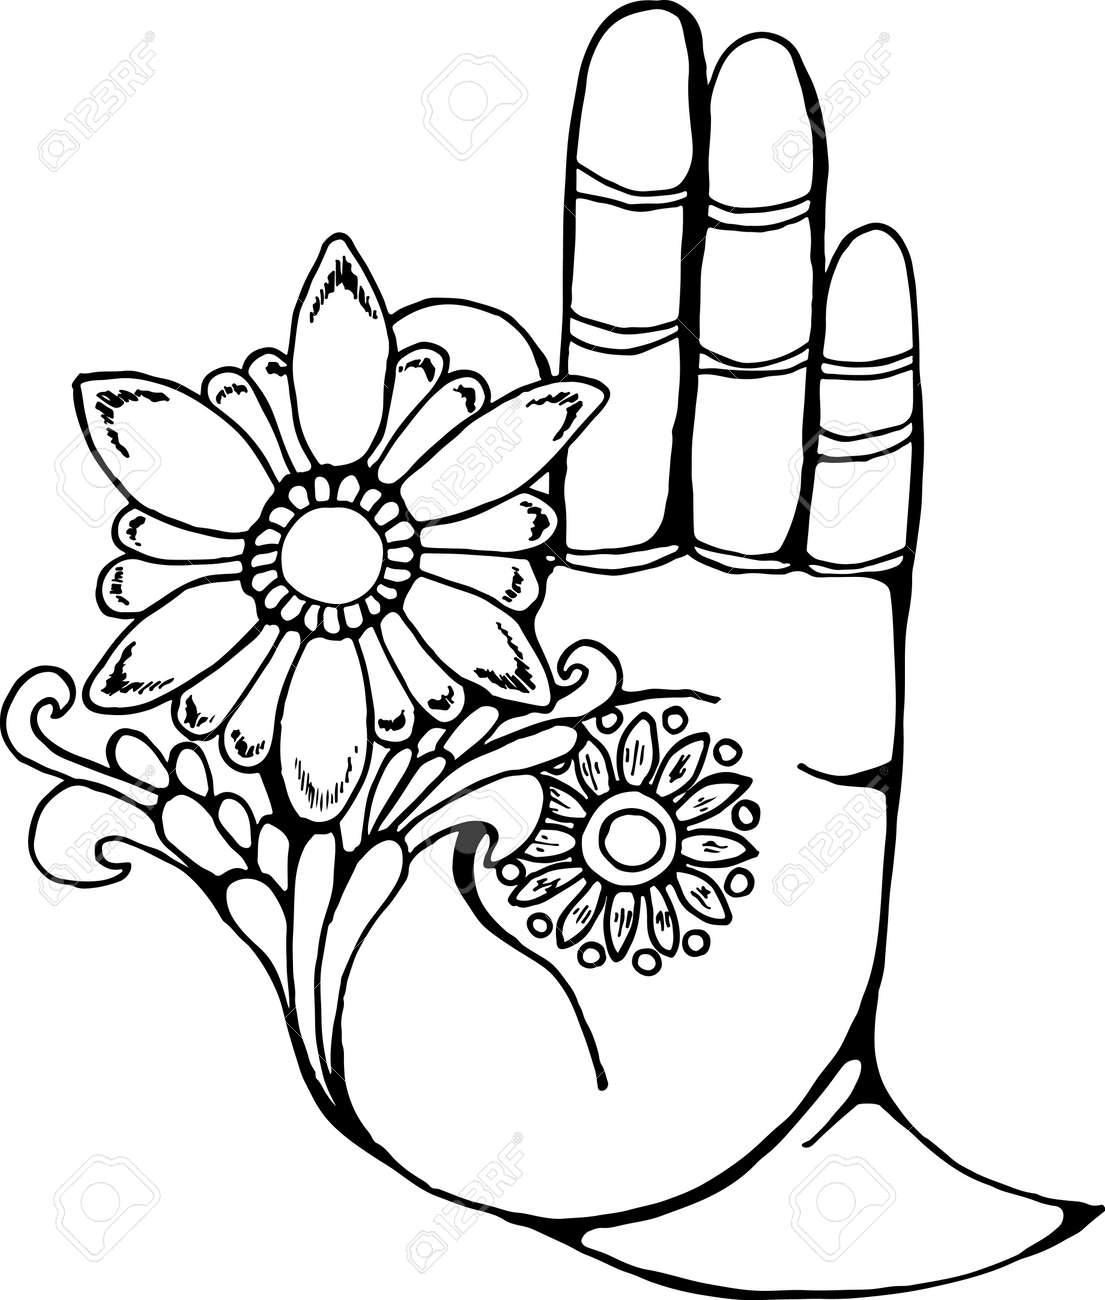 Illustration of a buddha hand holding a flower black and white illustration of a buddha hand holding a flower black and white drawing stock vector mightylinksfo